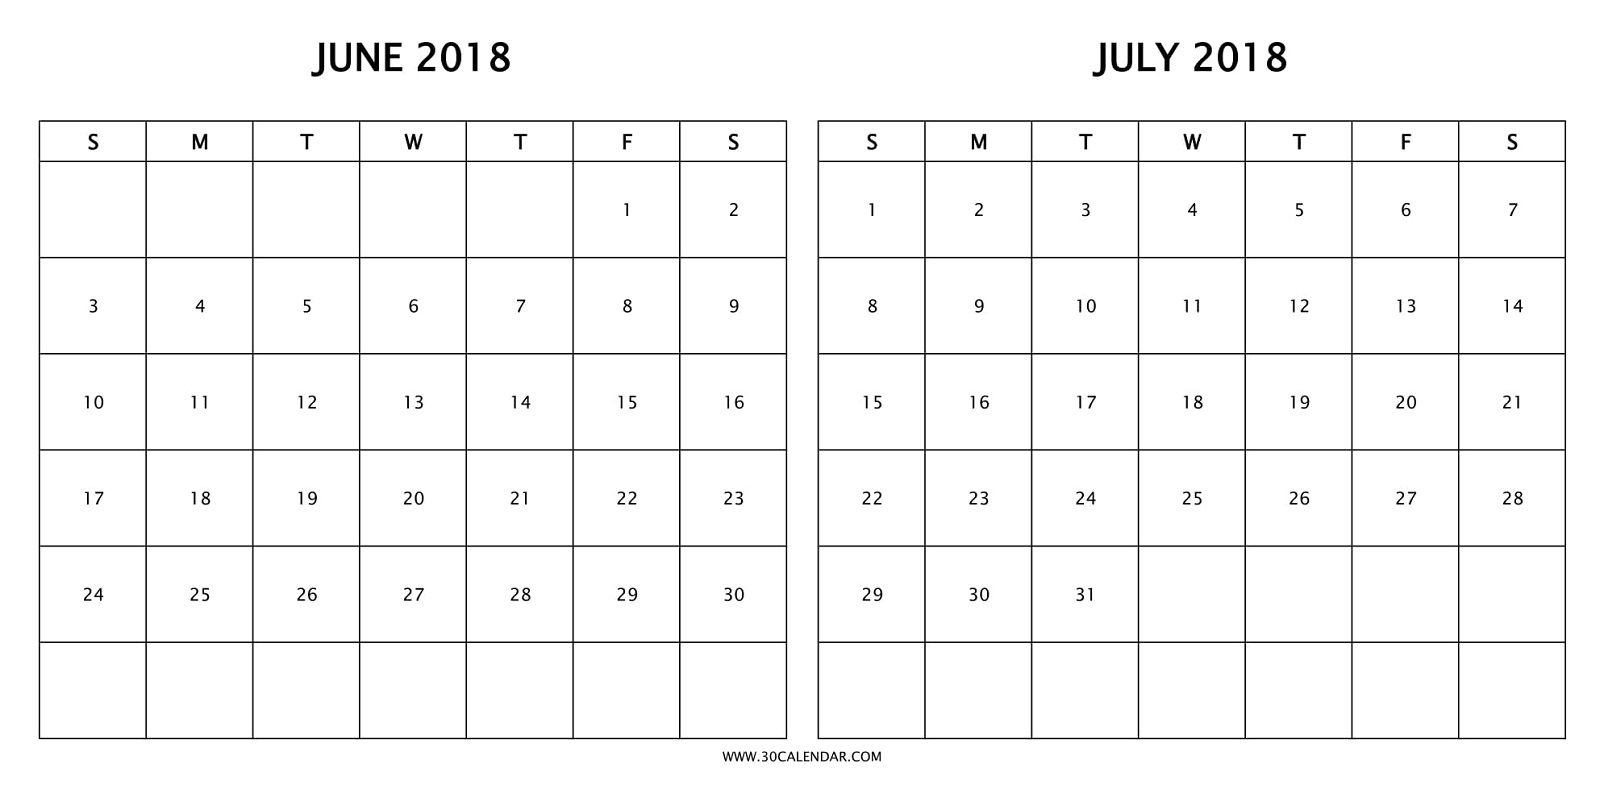 Print Free Two Month Calendar 2018 June July With Holidays | 2018 within 2 Month Calendar Template June July